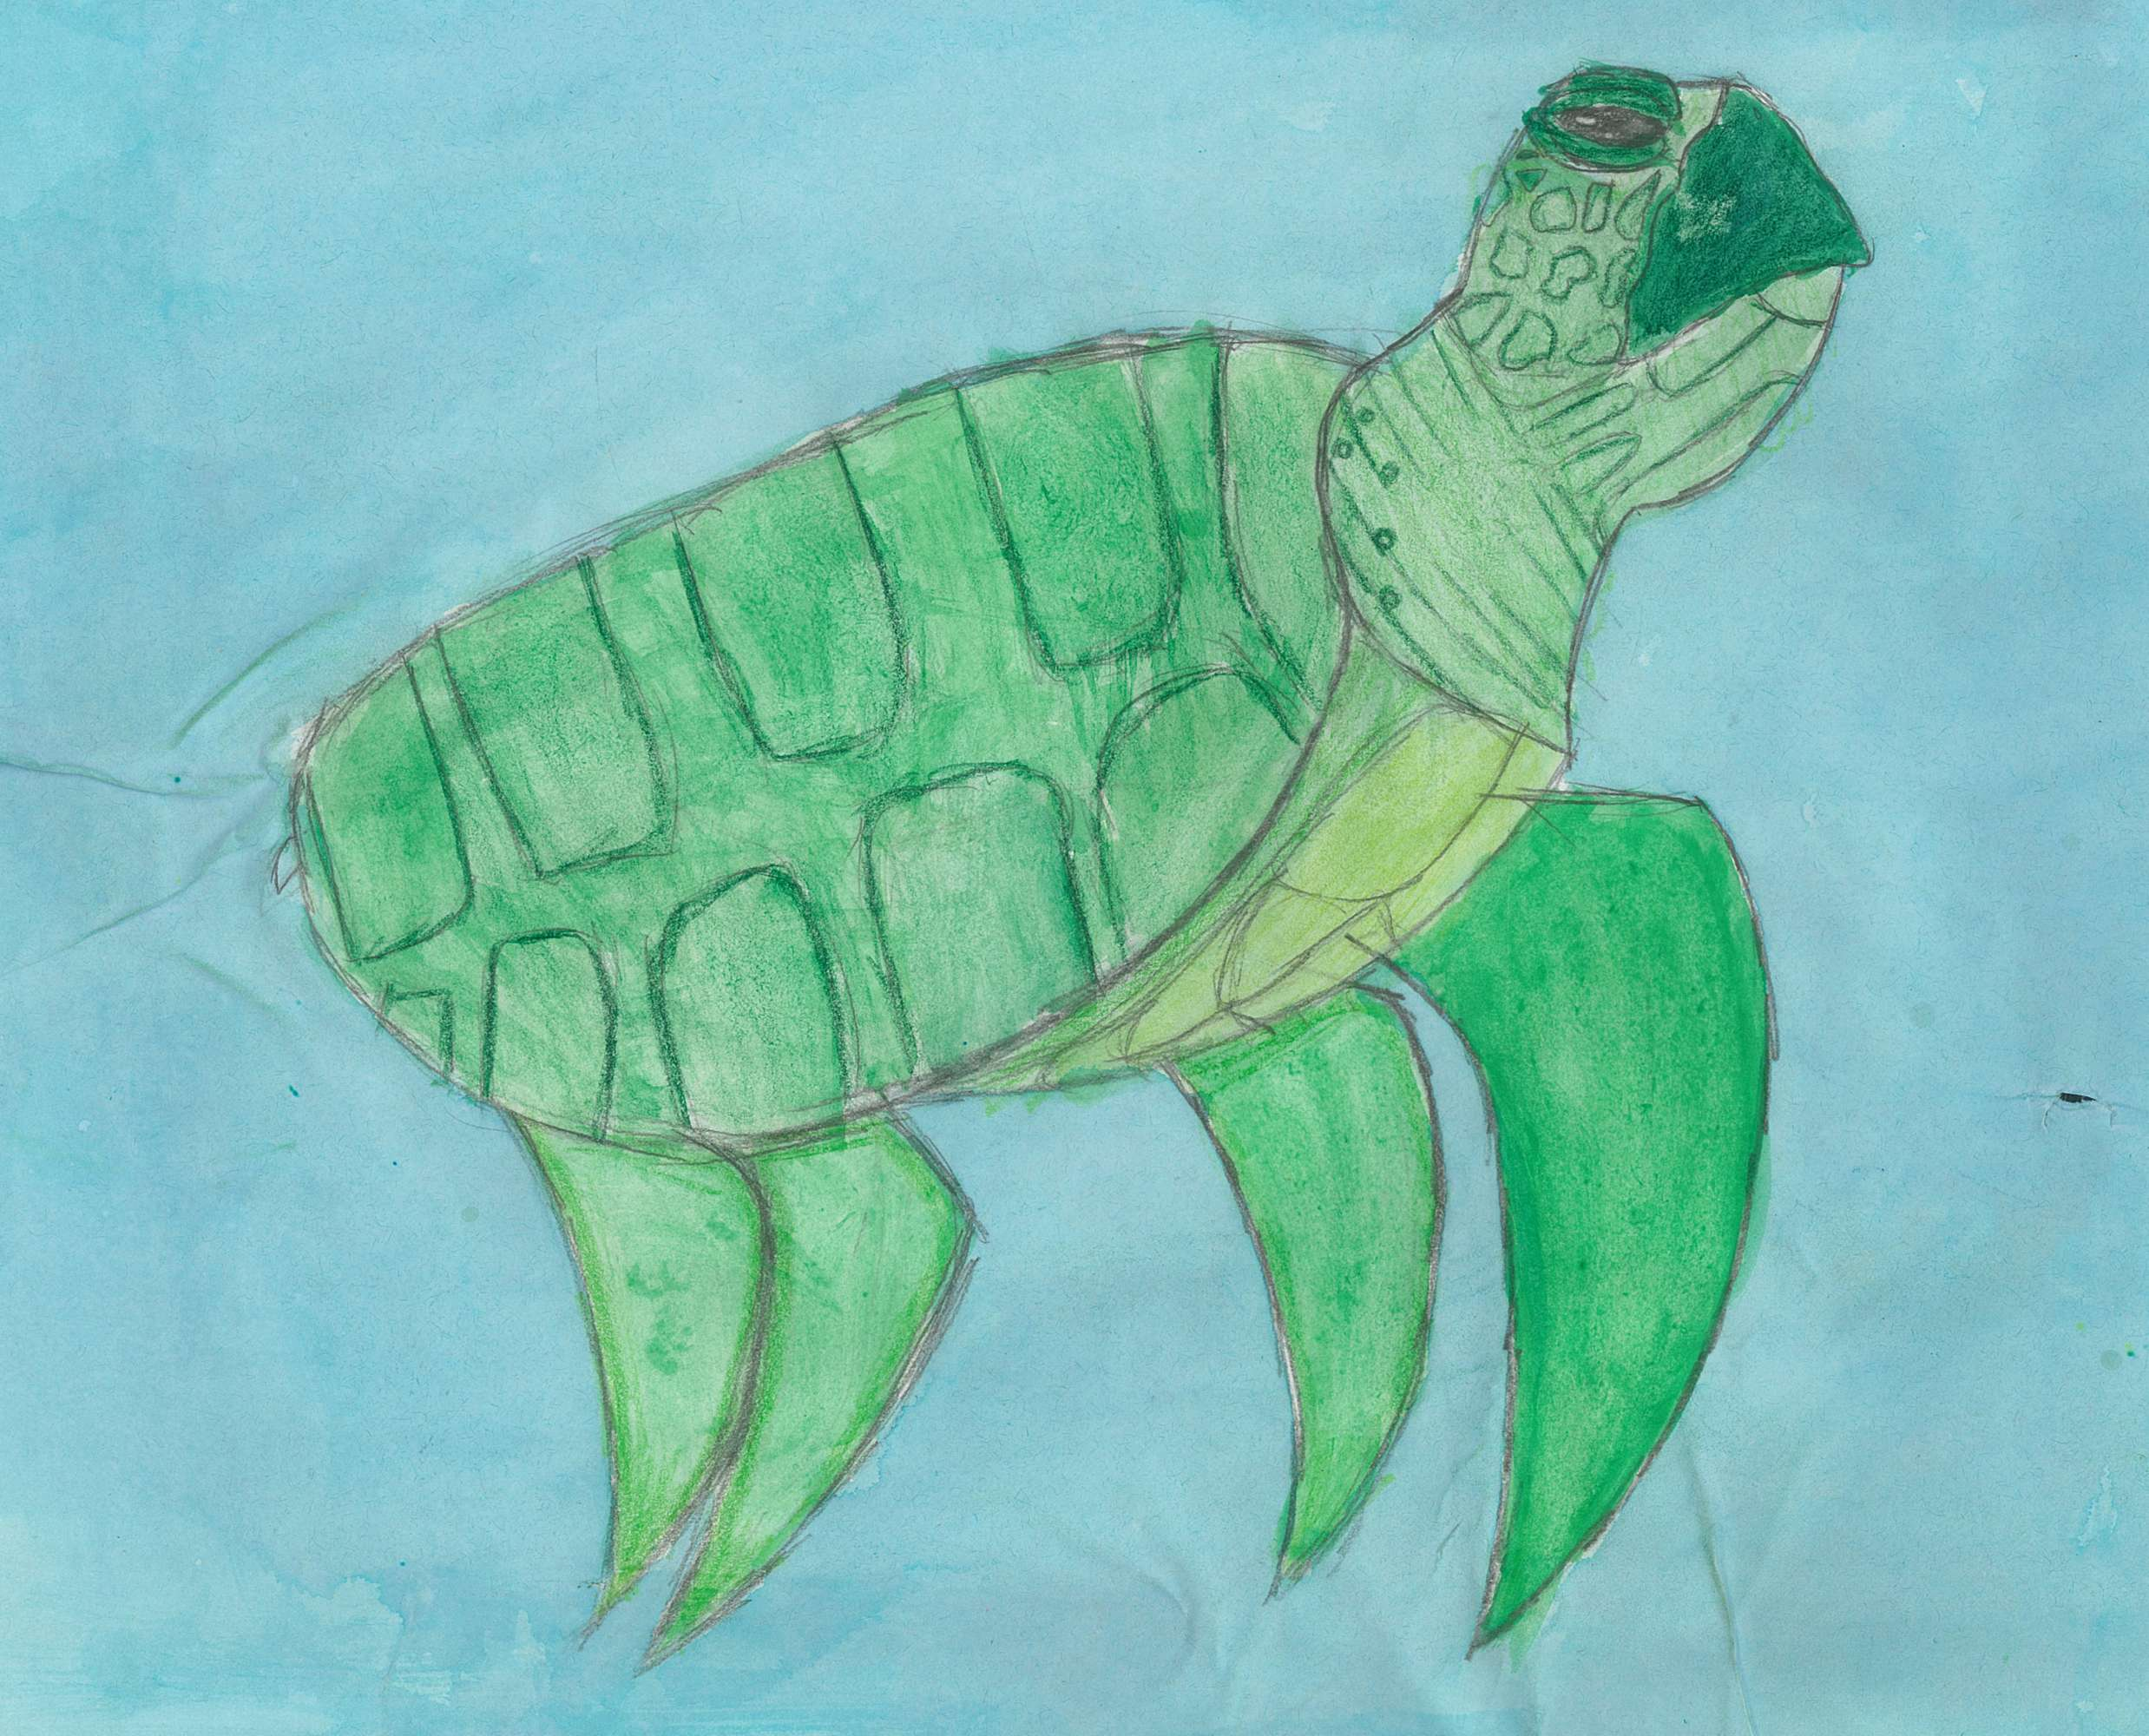 The Details of the Turtle